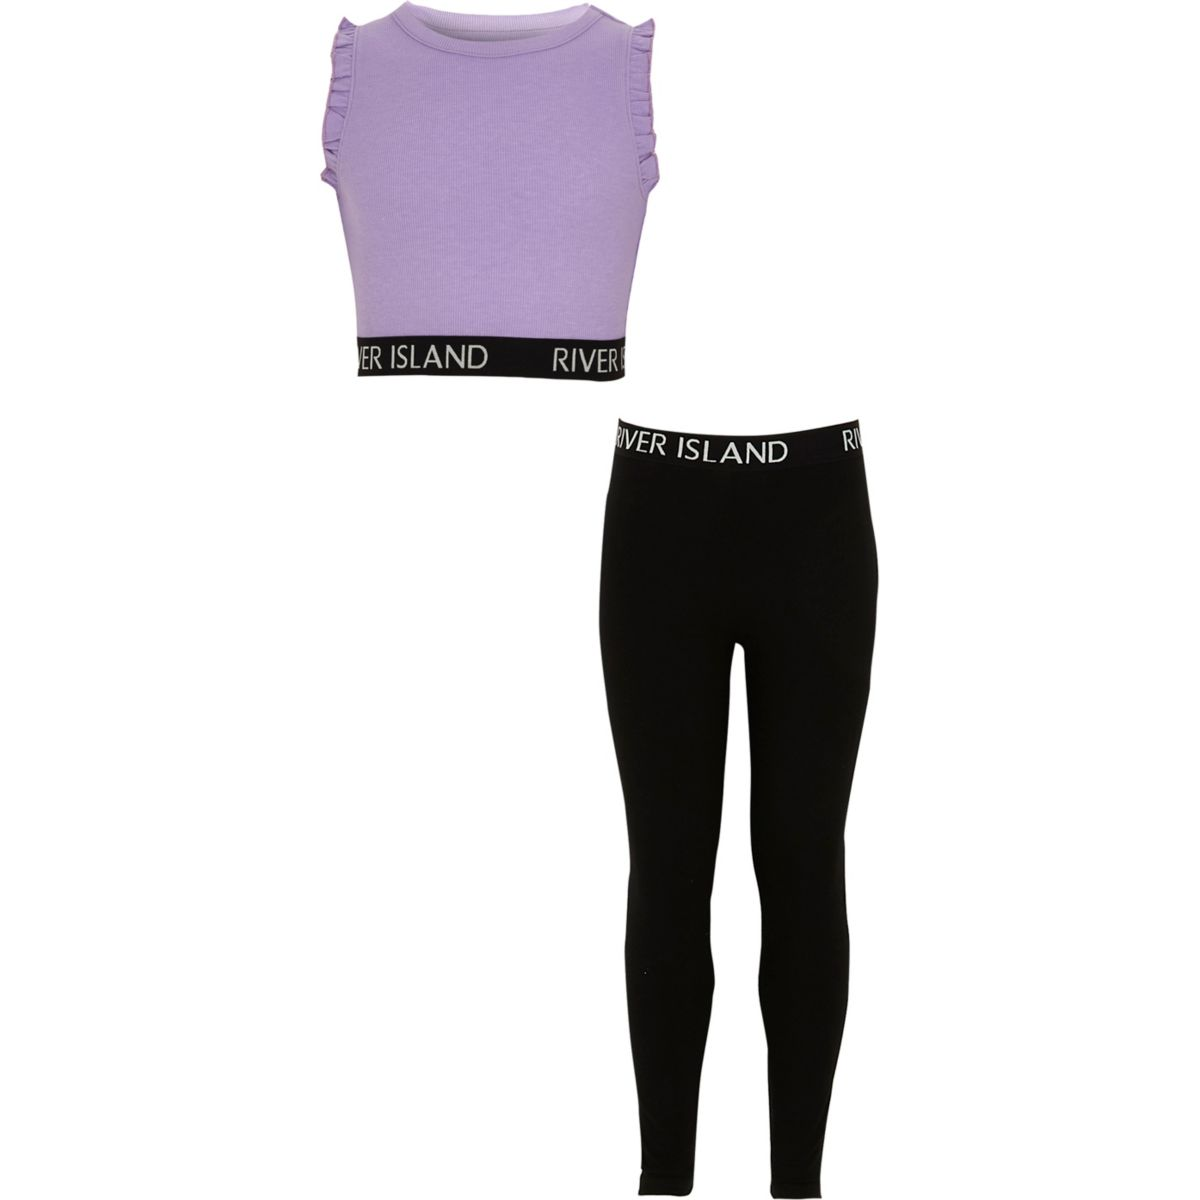 Girls RI purple crop top and leggings outfit